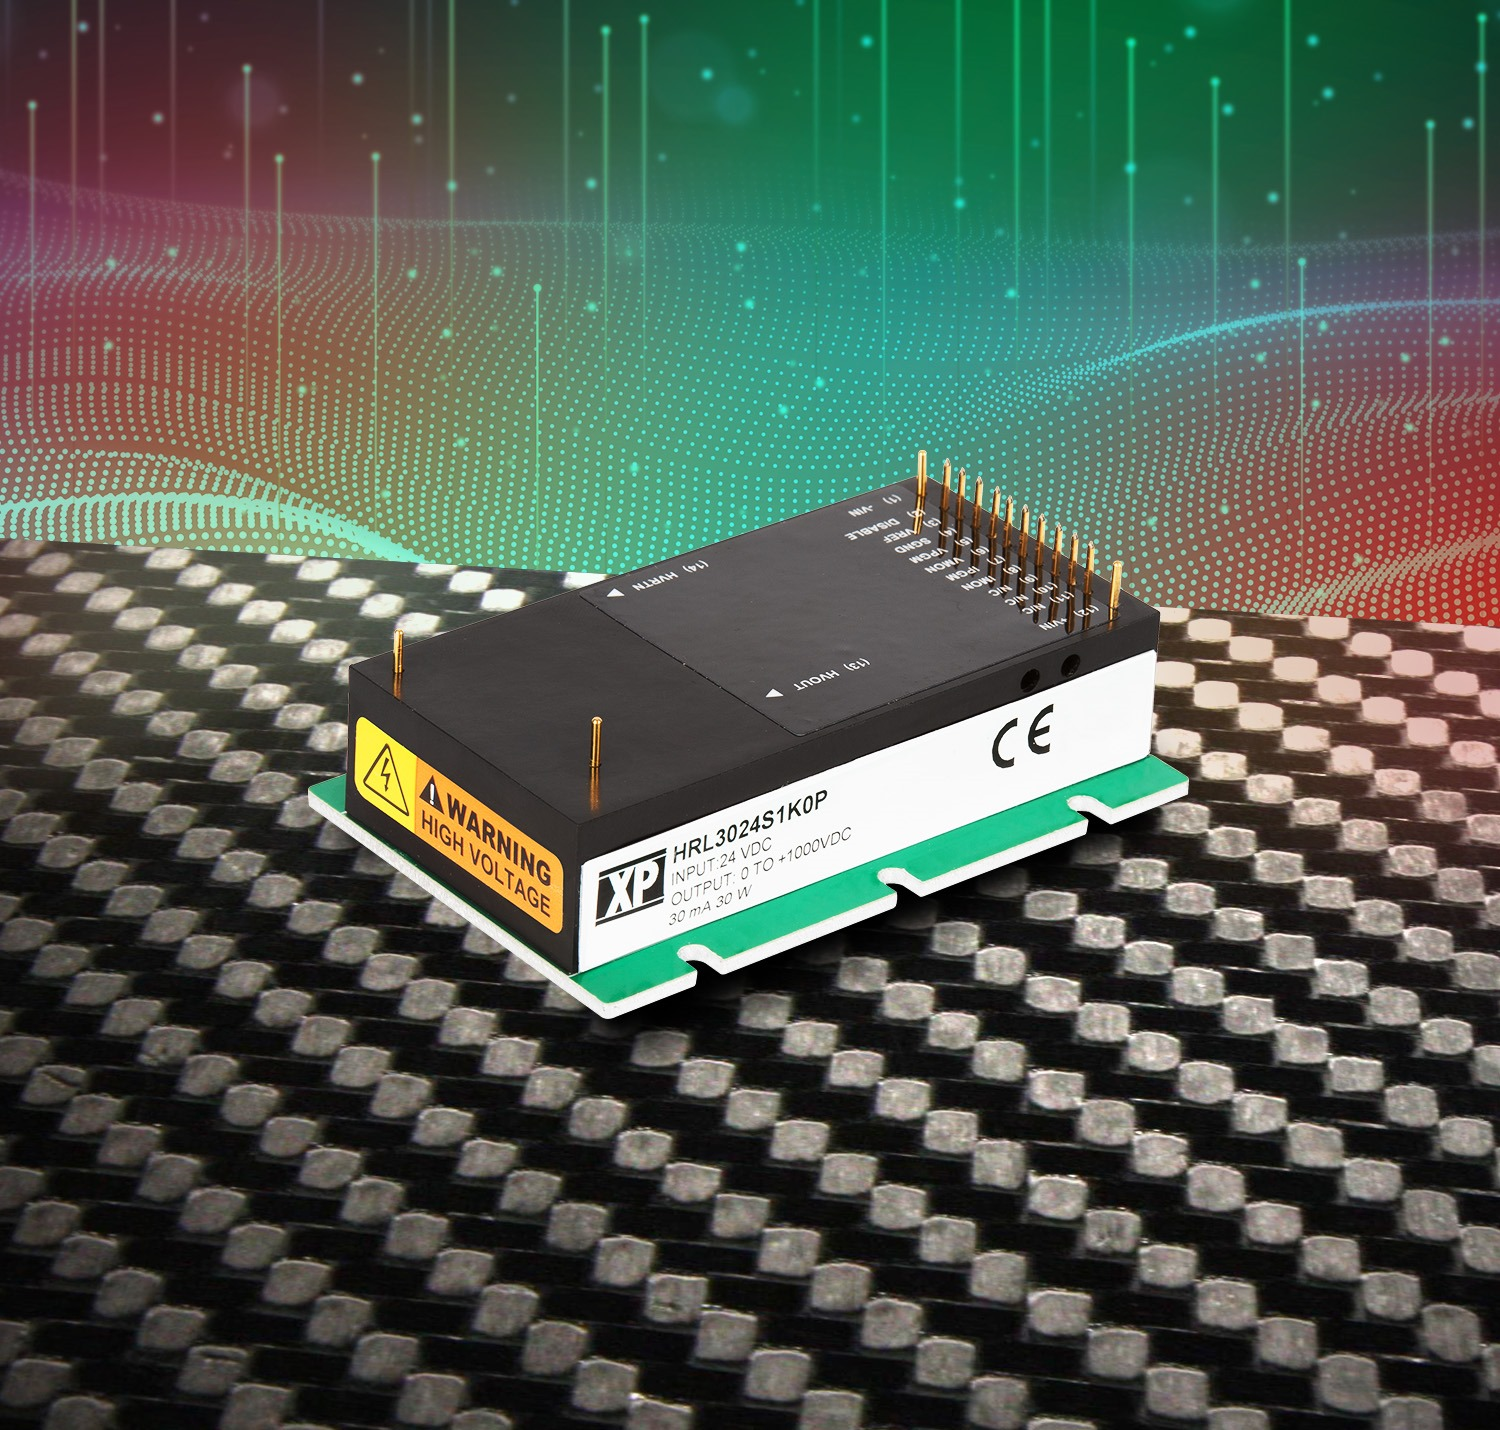 High-Voltage DC-DC Power Module for Scientific Applications